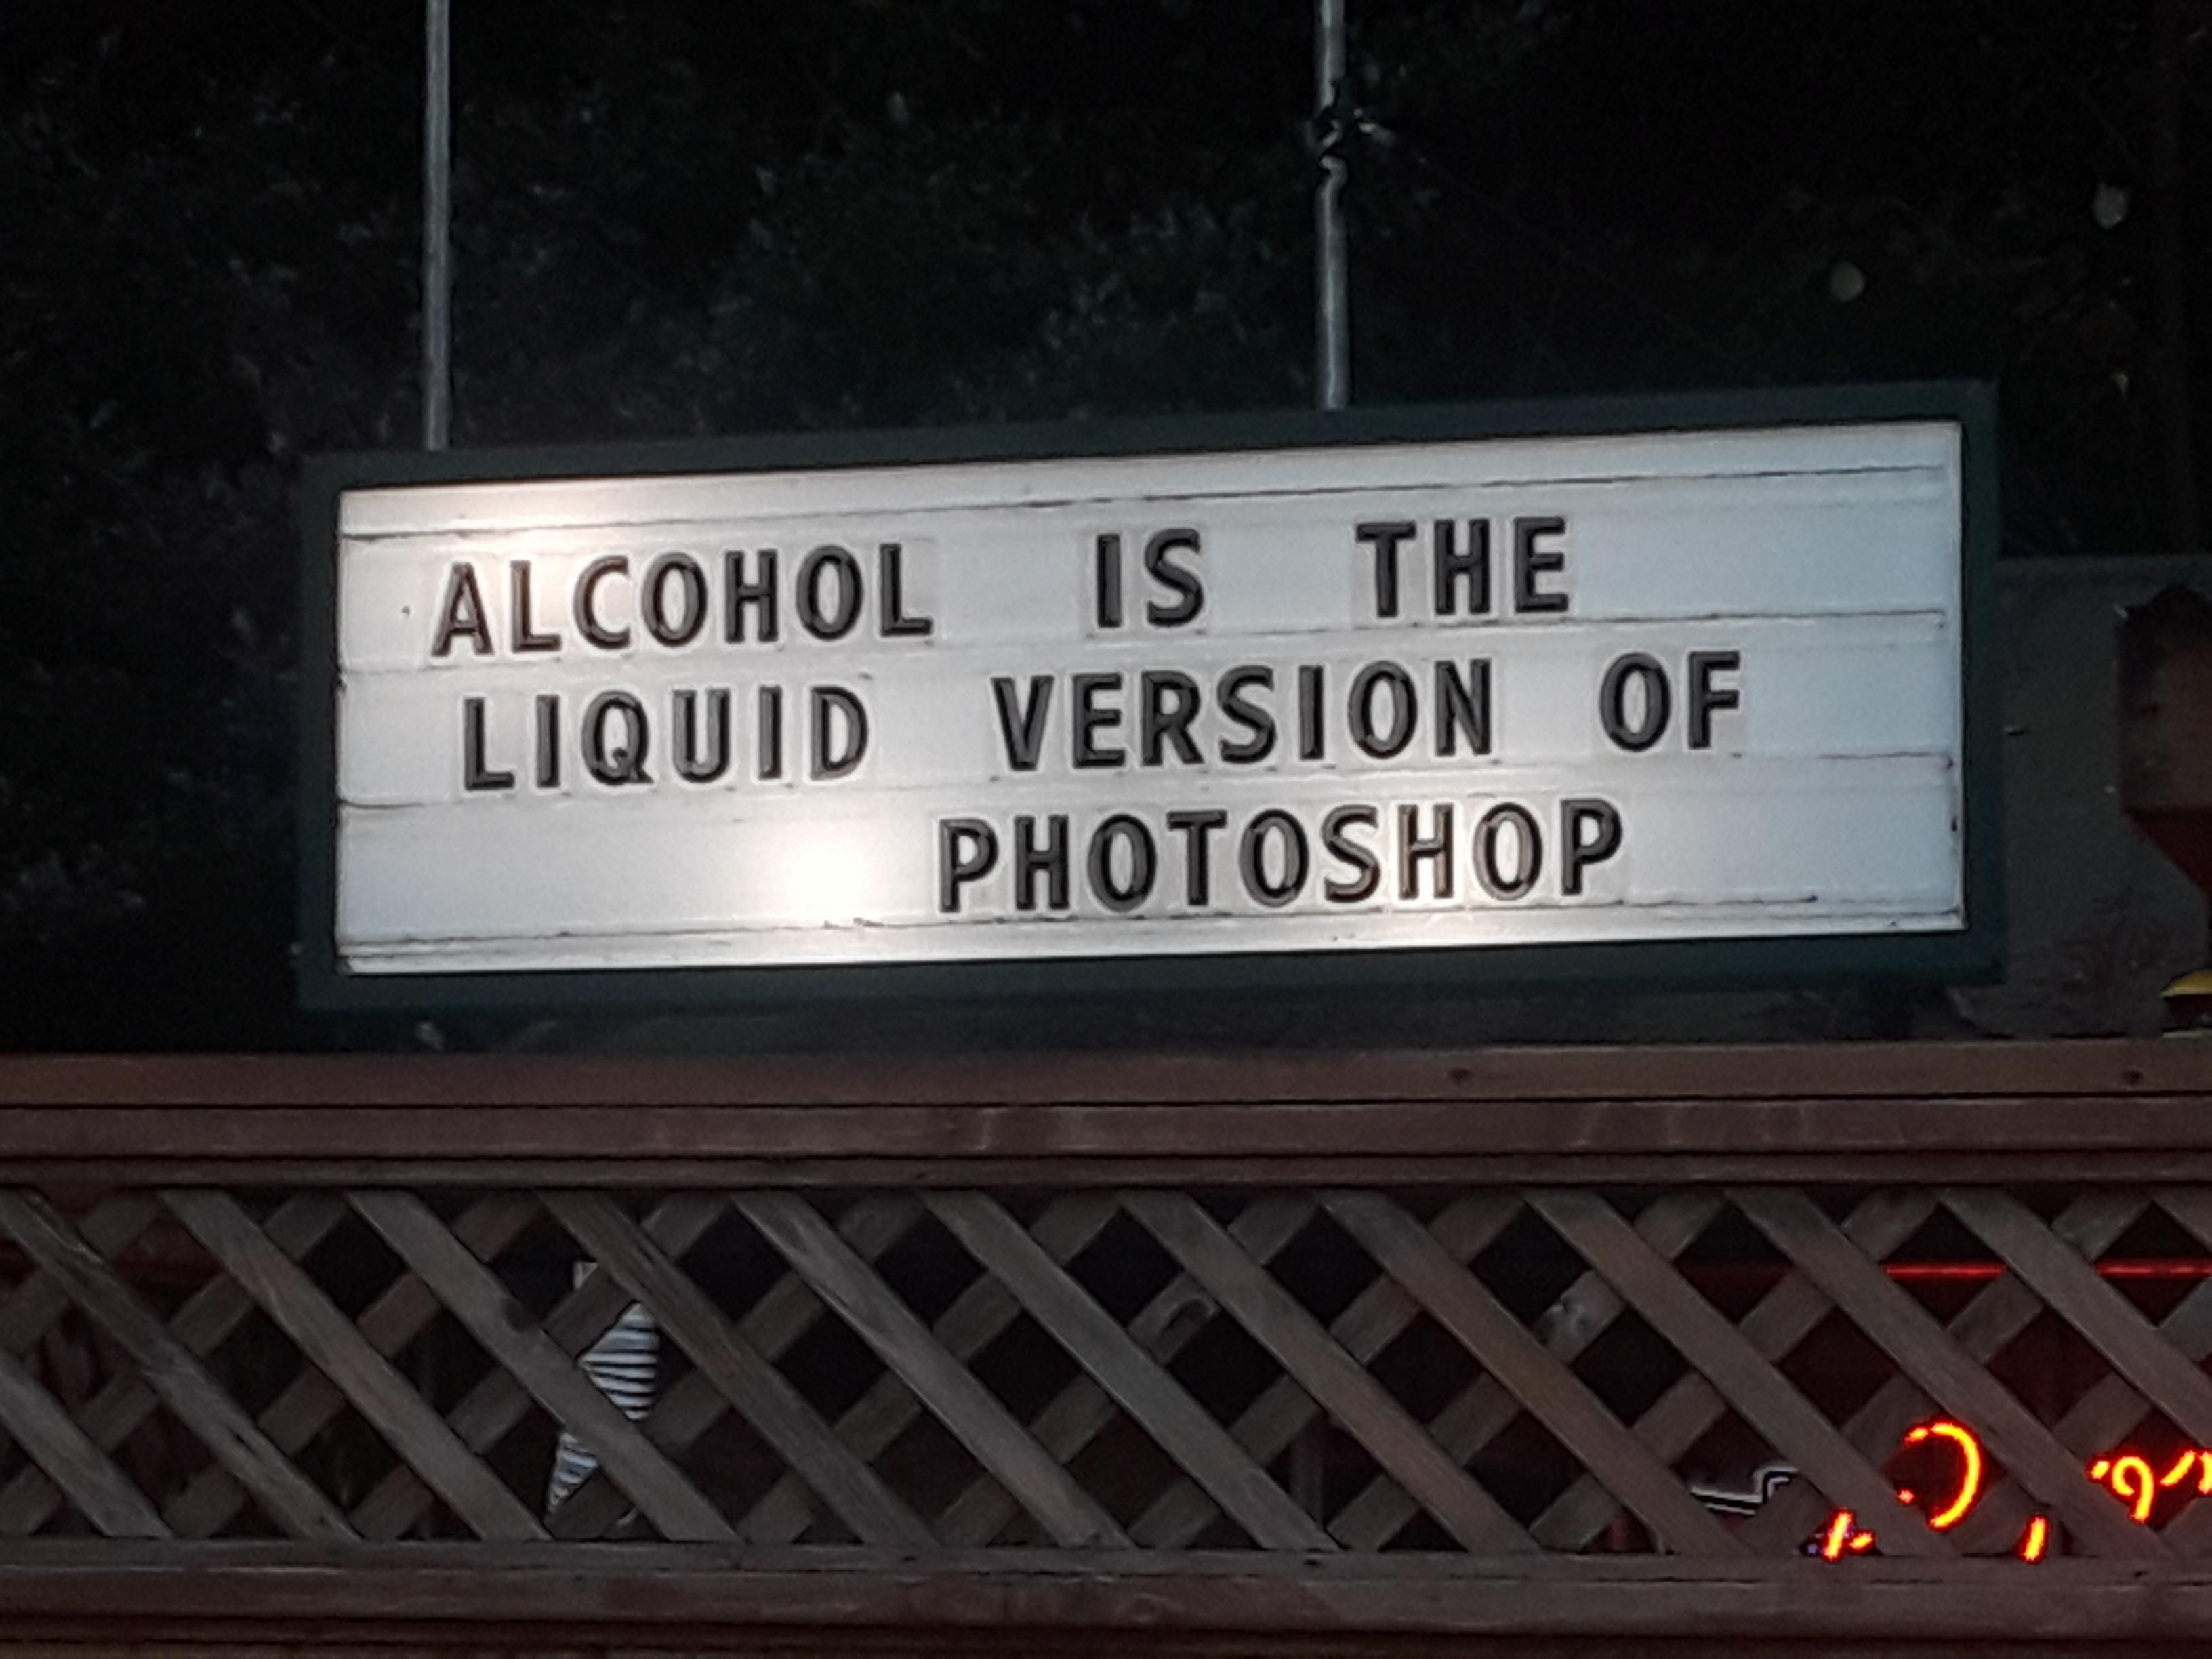 Saw this Bar sign on the way to a state park